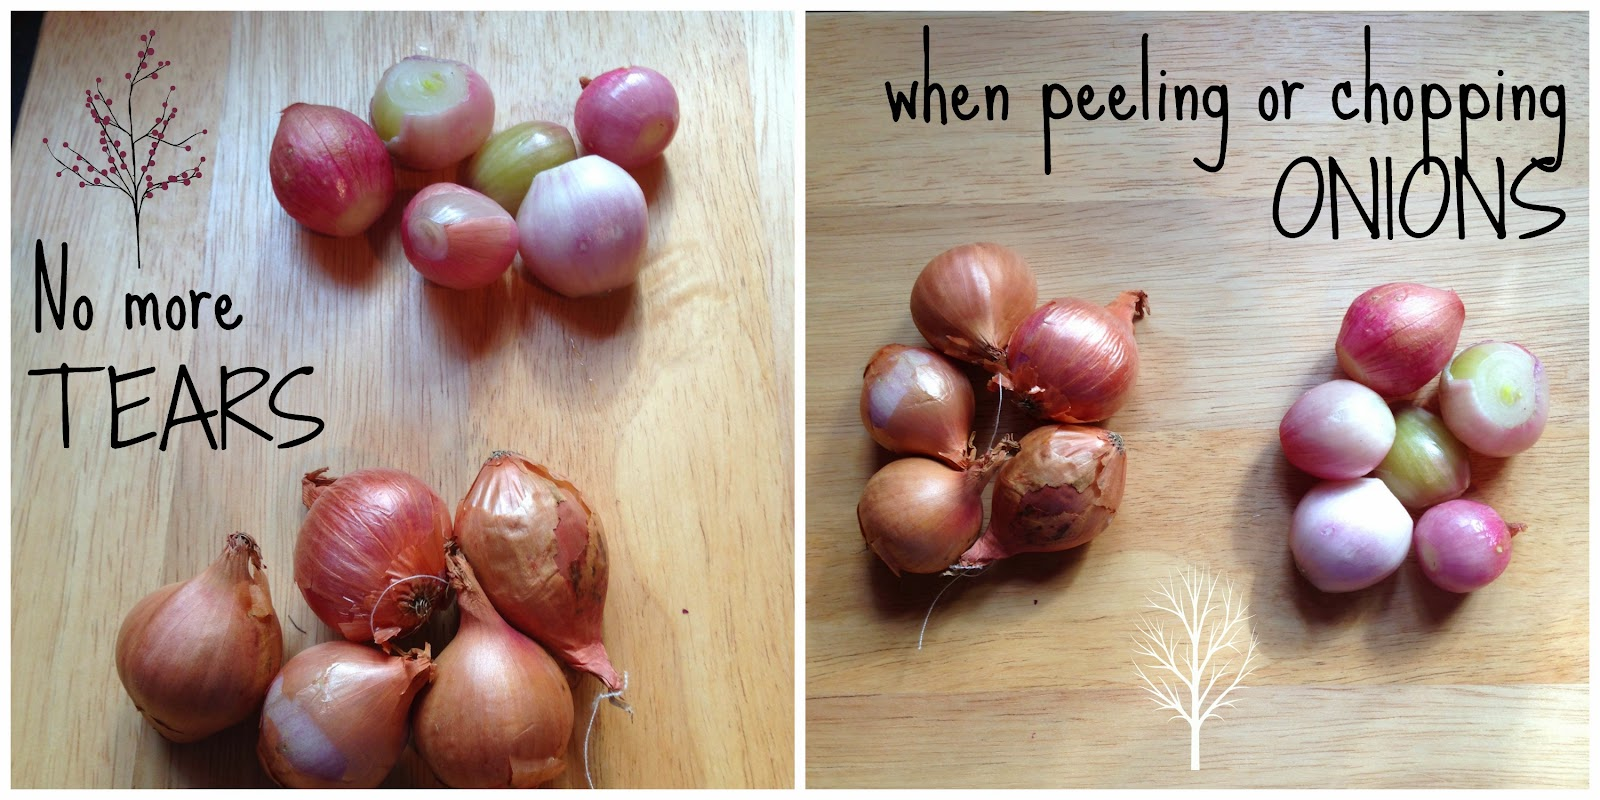 How to peel and chop onions without your eyes stinging | Kukskitchen